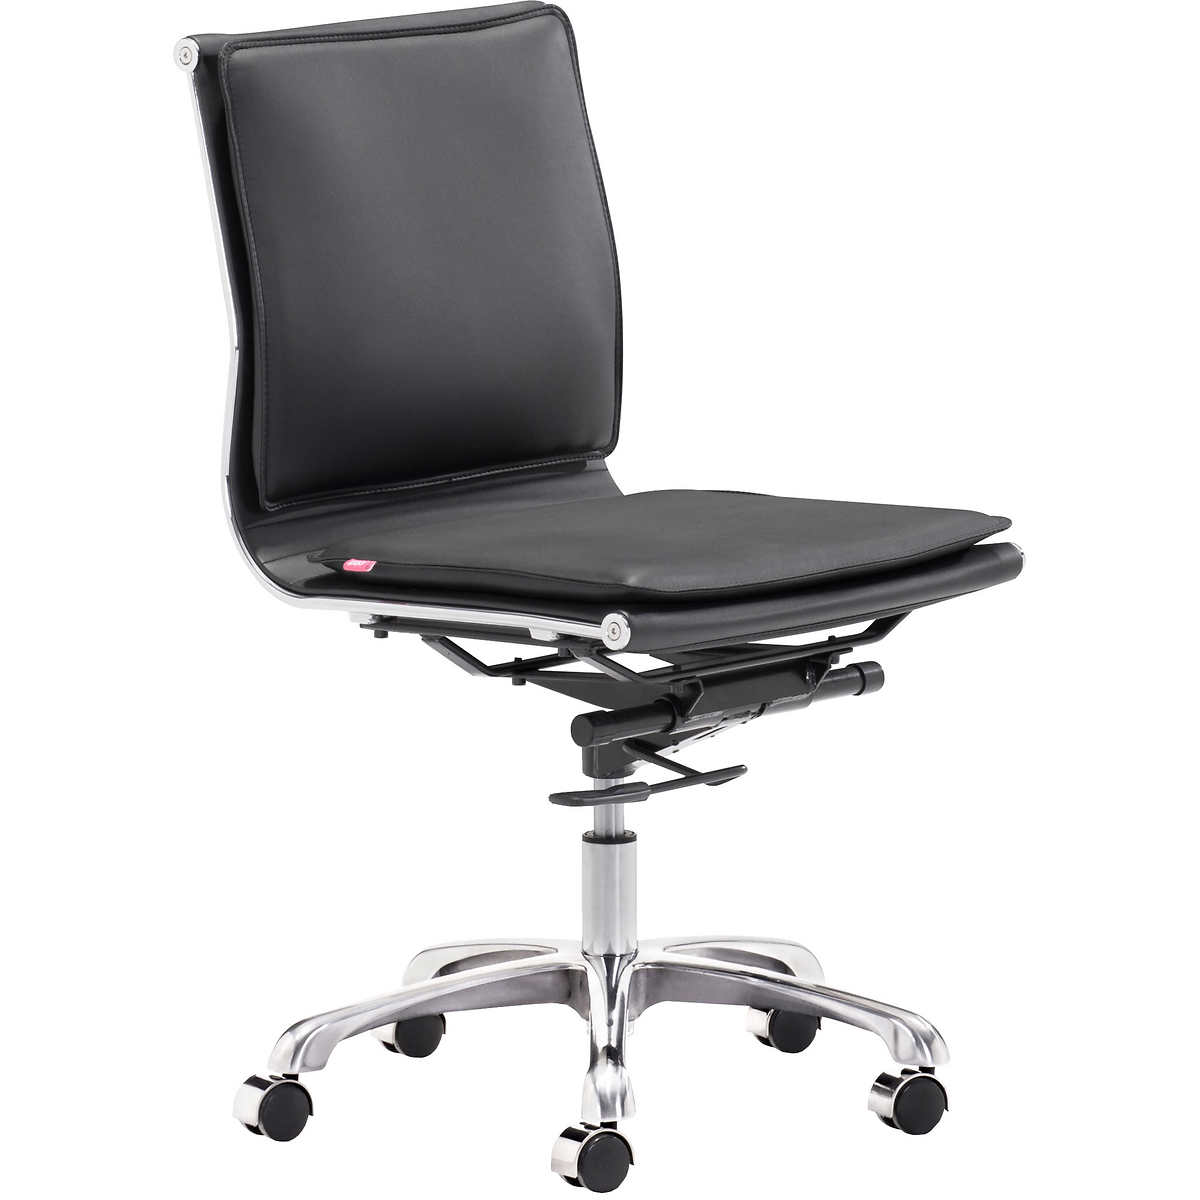 Black and white office chair - Addison Armless Office Chair Black